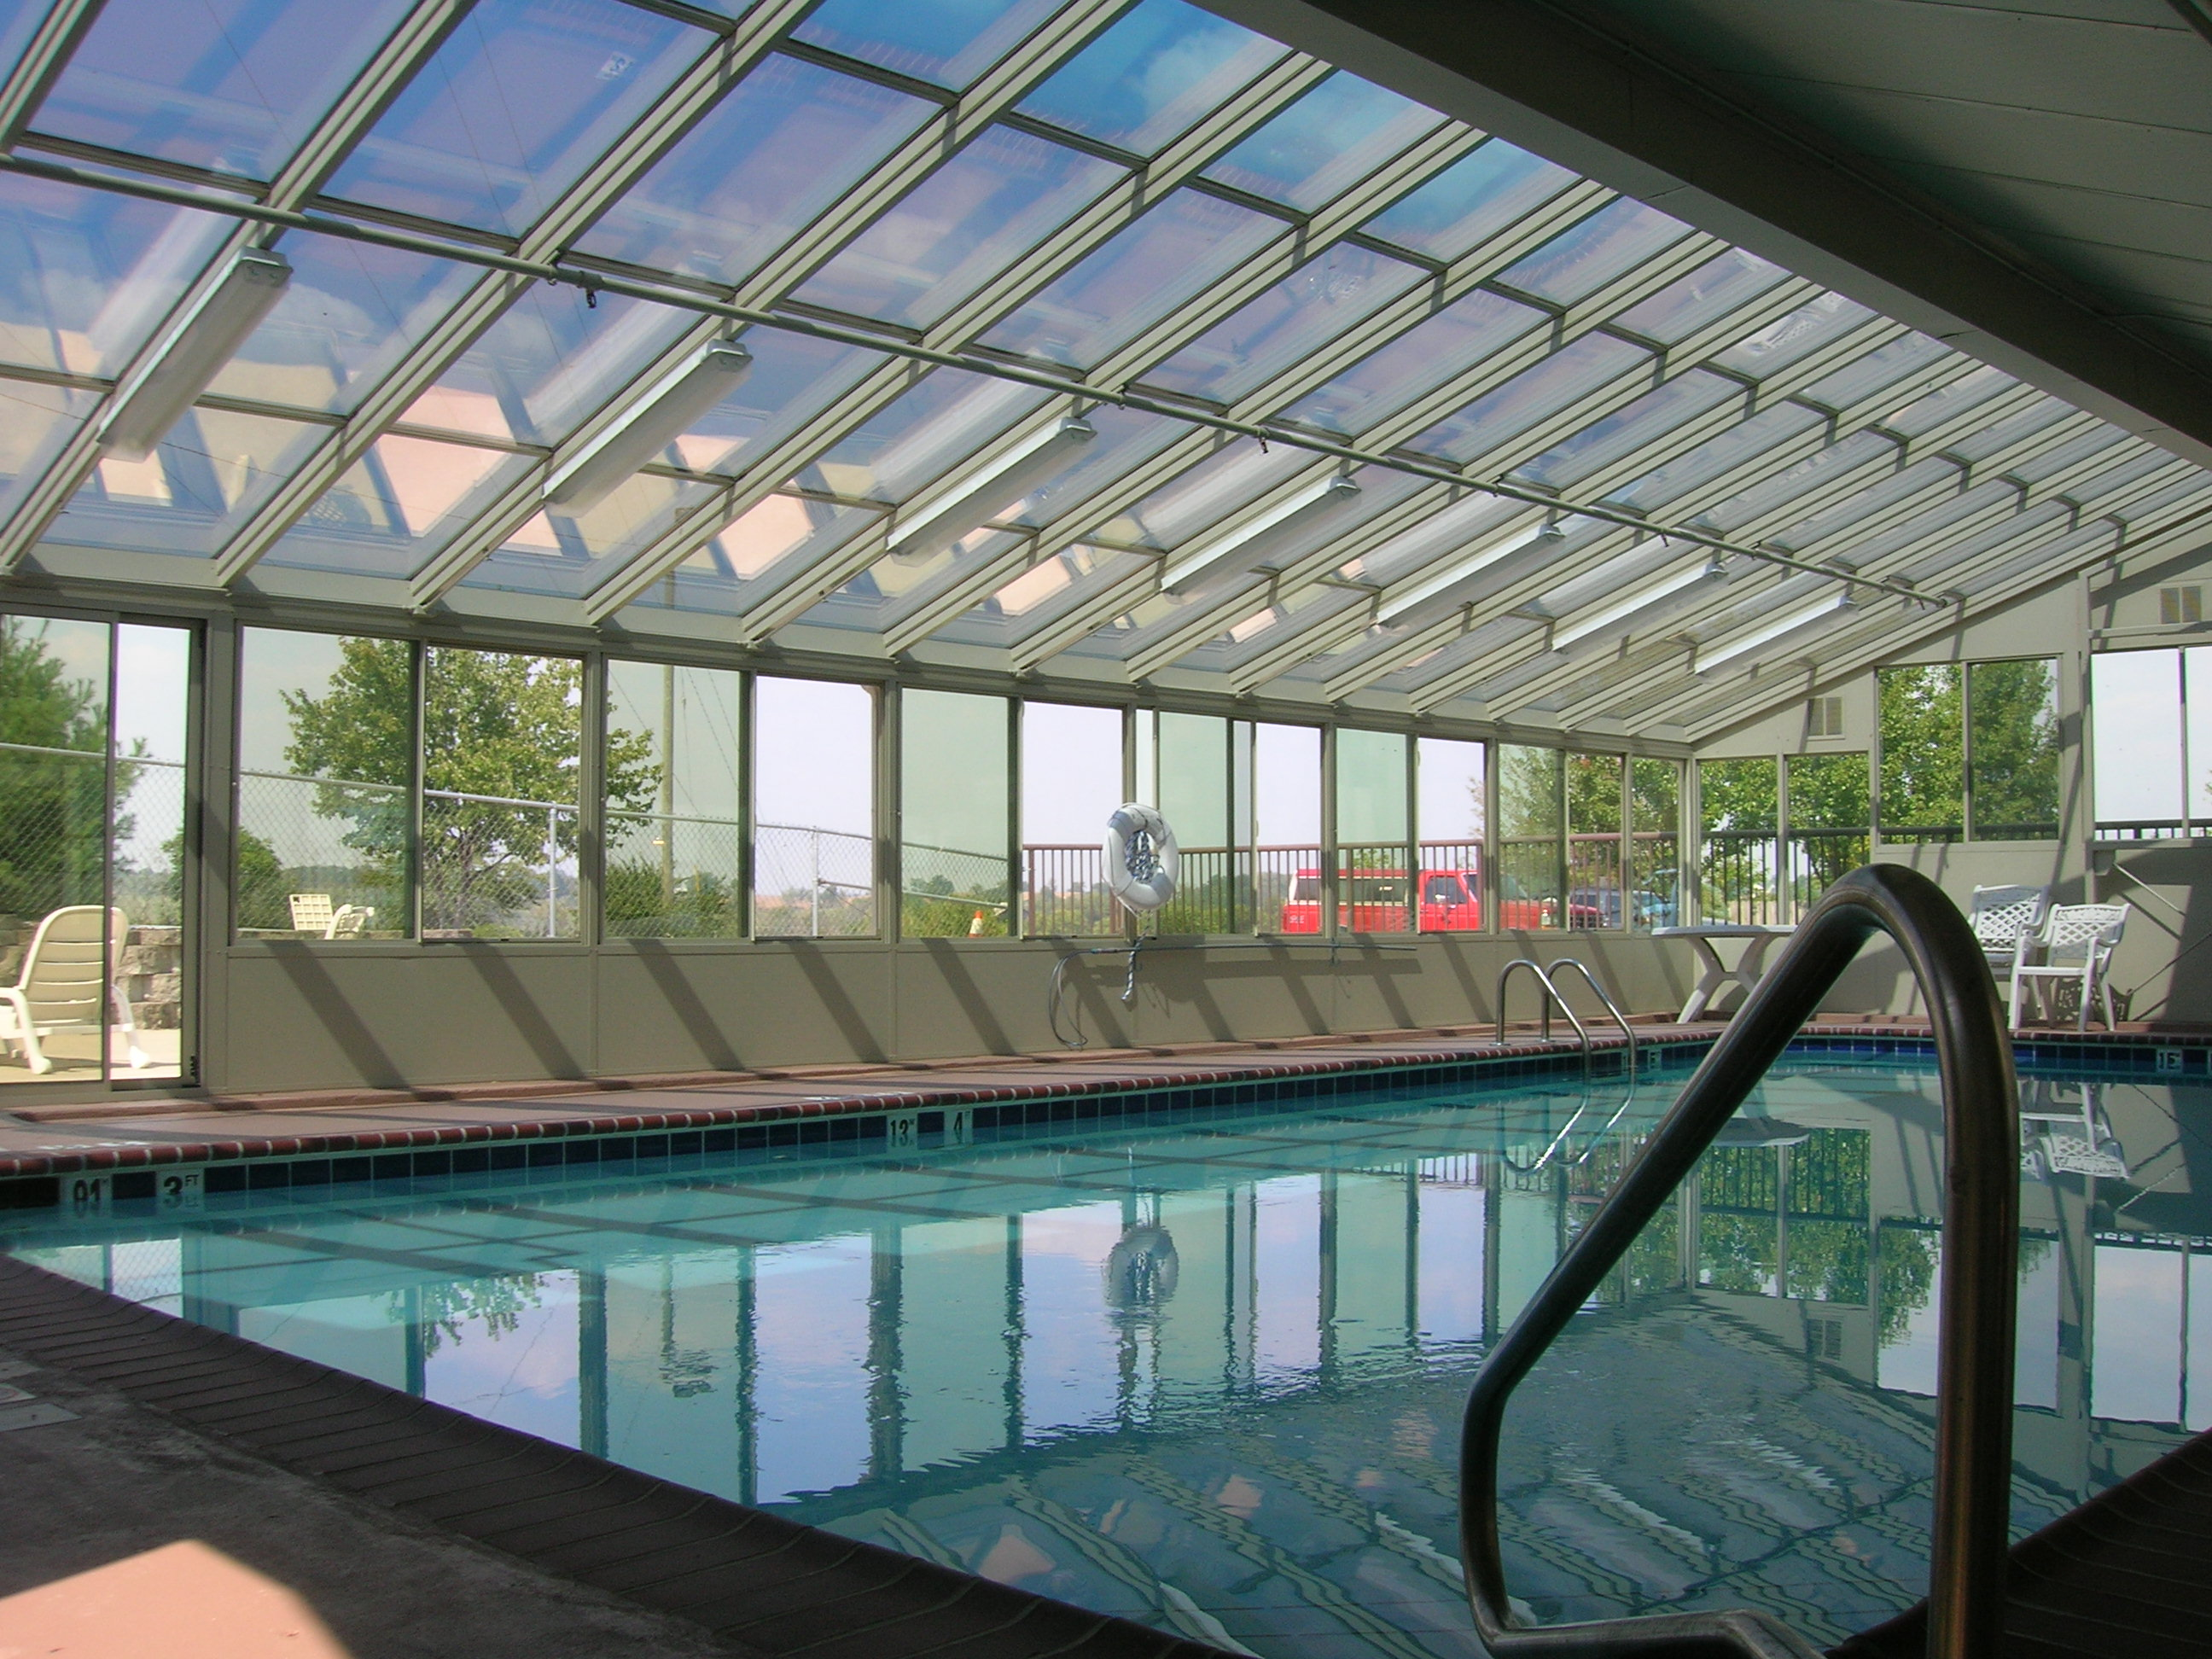 Cathedral Glass Roof Design Sandtone Swimming Pool Enclosure with solid kickpanels